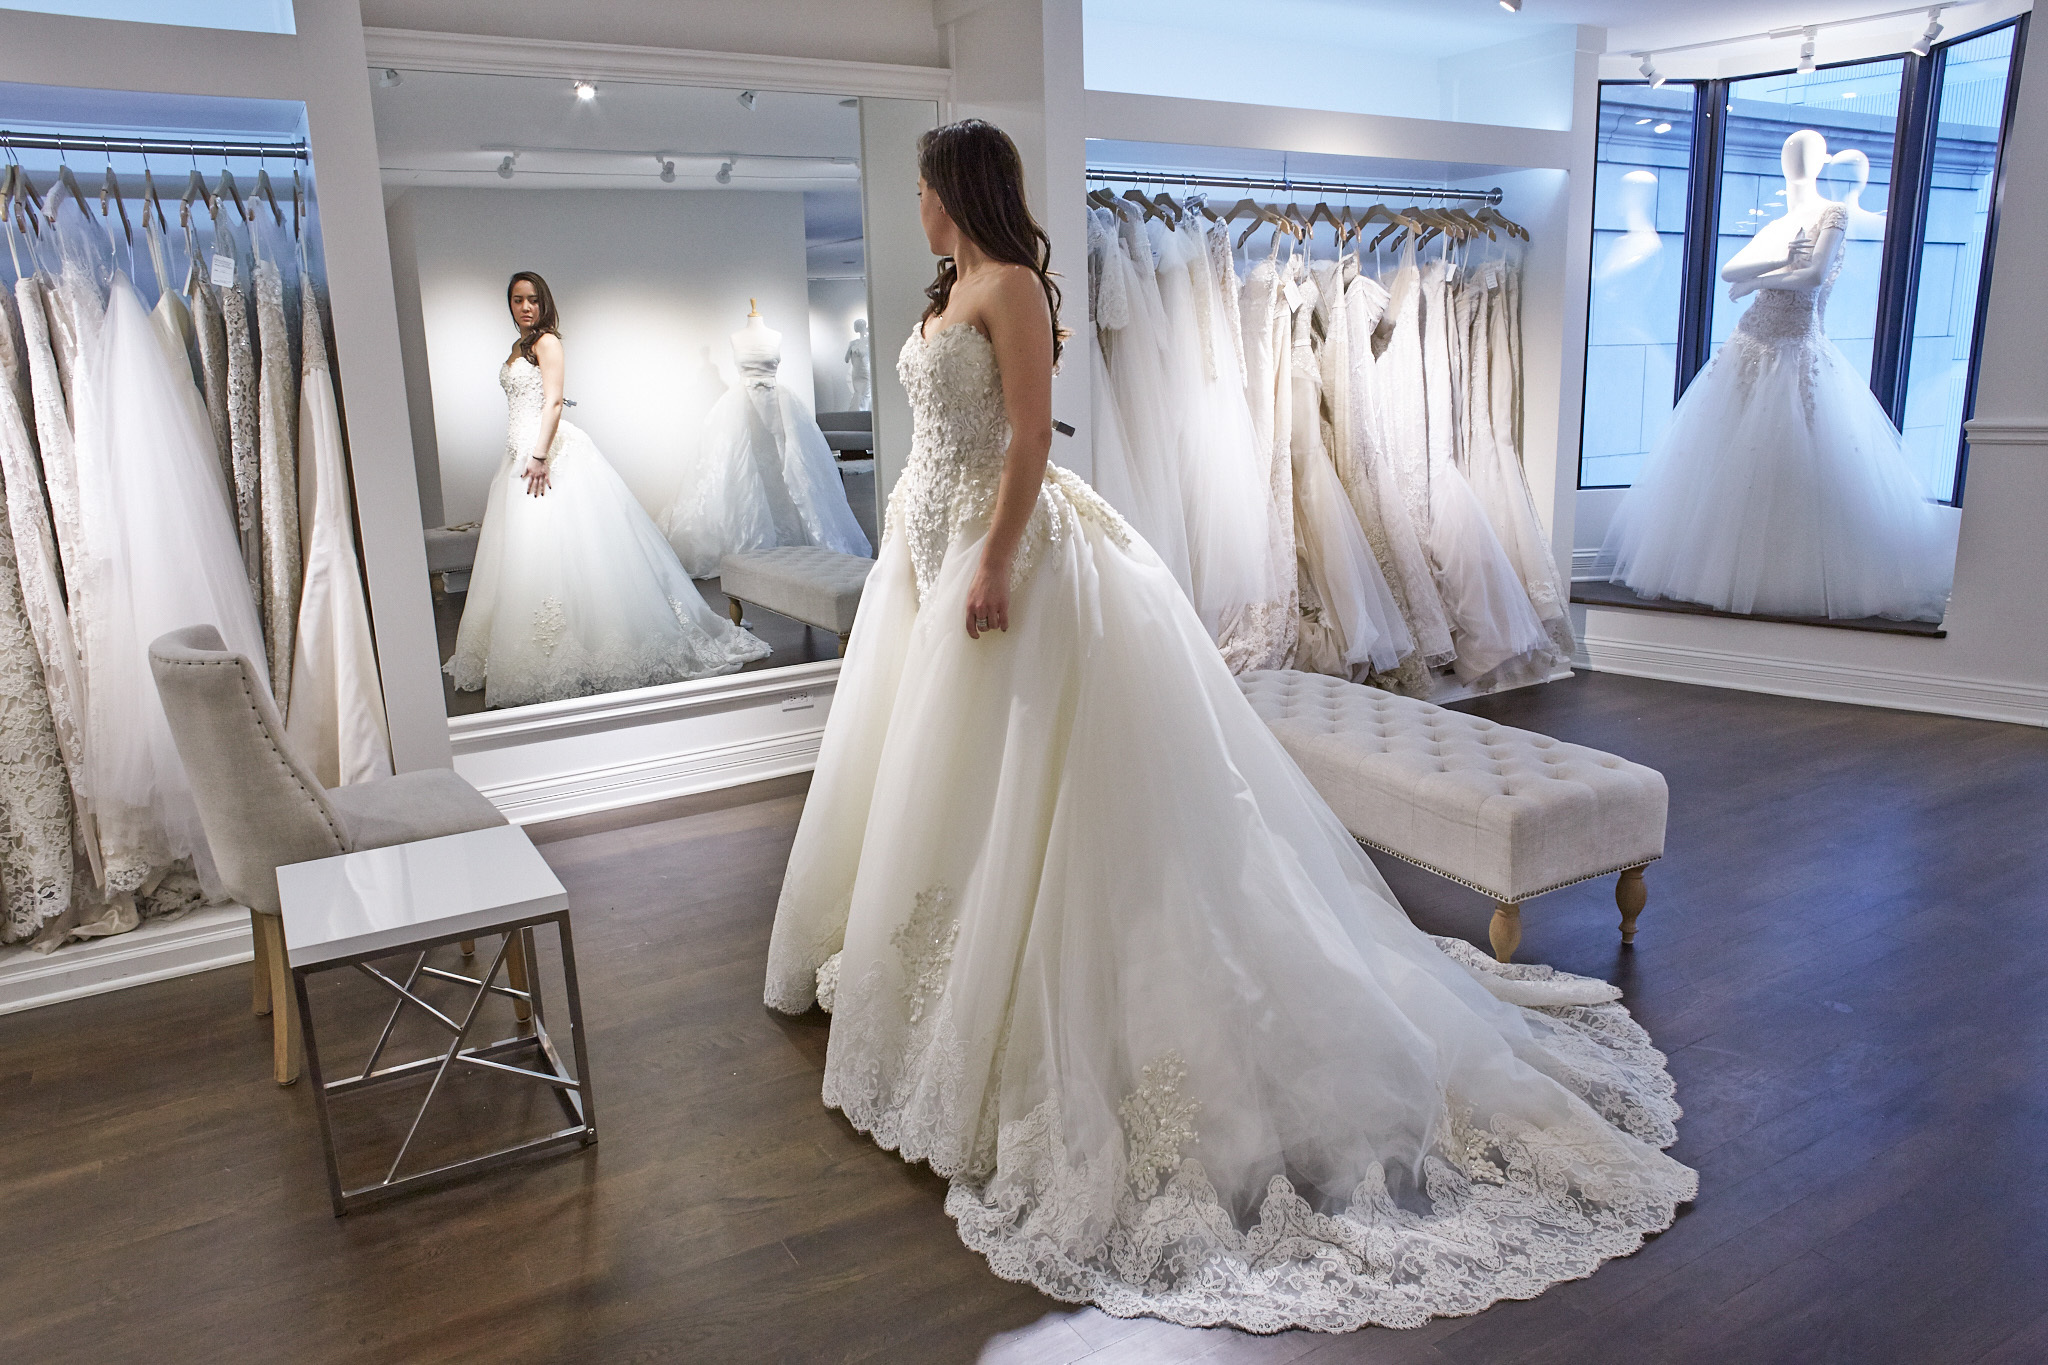 The best bridal shops in chicago for the perfect wedding dress dimitras bridal couture ombrellifo Image collections